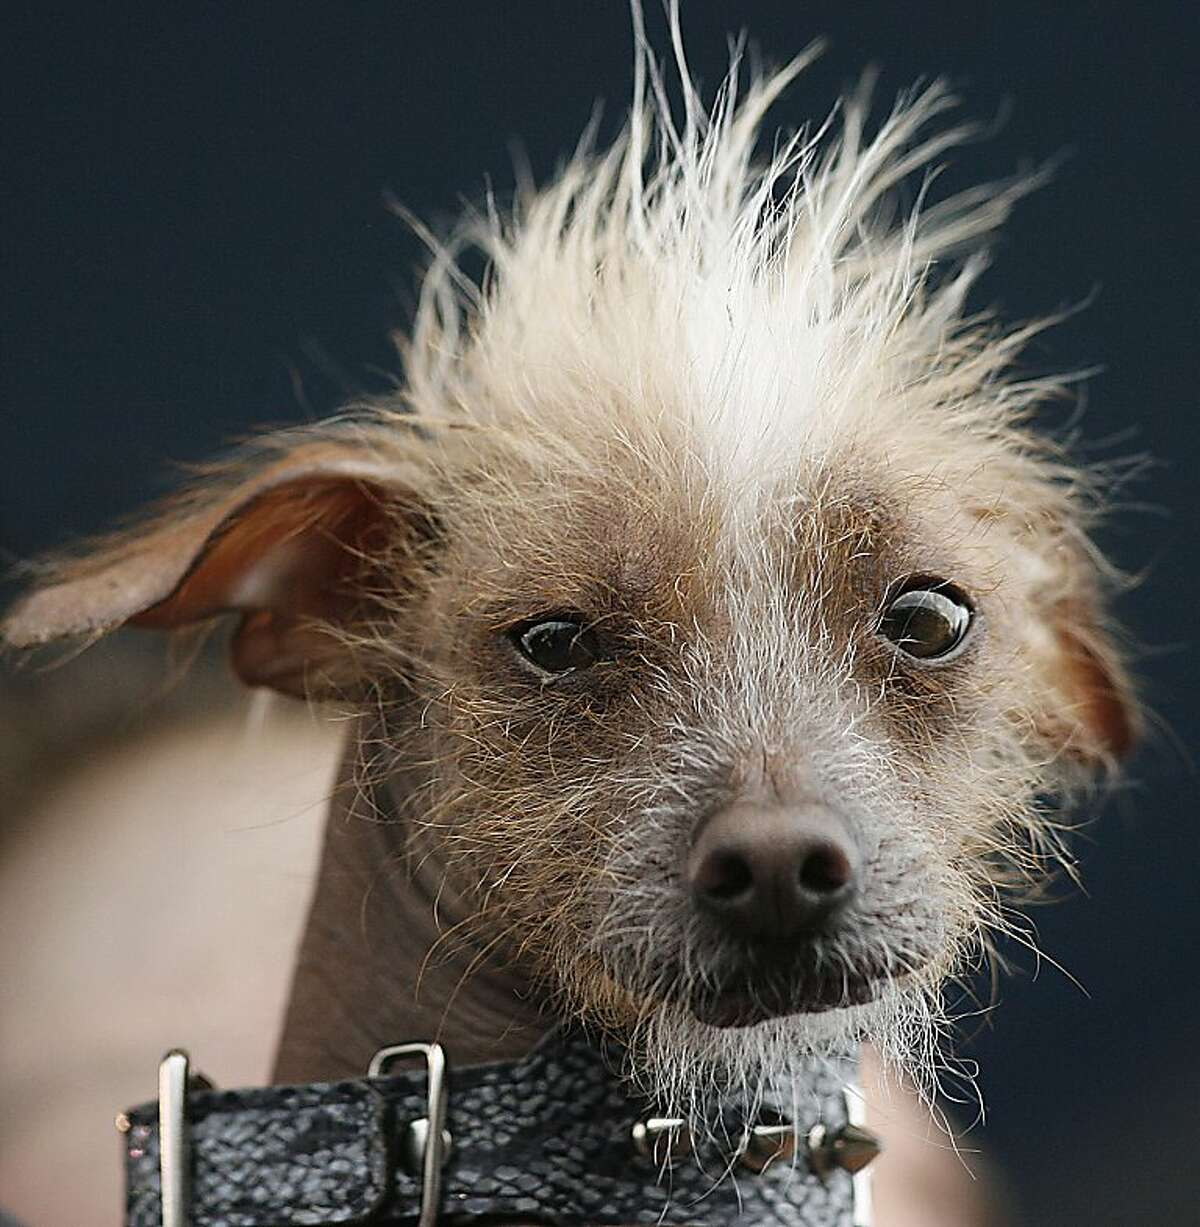 A Chinese Crested dog named Icky is brought to the stage for judging during the 2012 World's Ugliest Dog contest at the Sonoma-Marin Fair in Petaluma on June 22, 2012 in California. AFP Photo / Kimihiro HoshinoKIMIHIRO HOSHINO/AFP/GettyImages